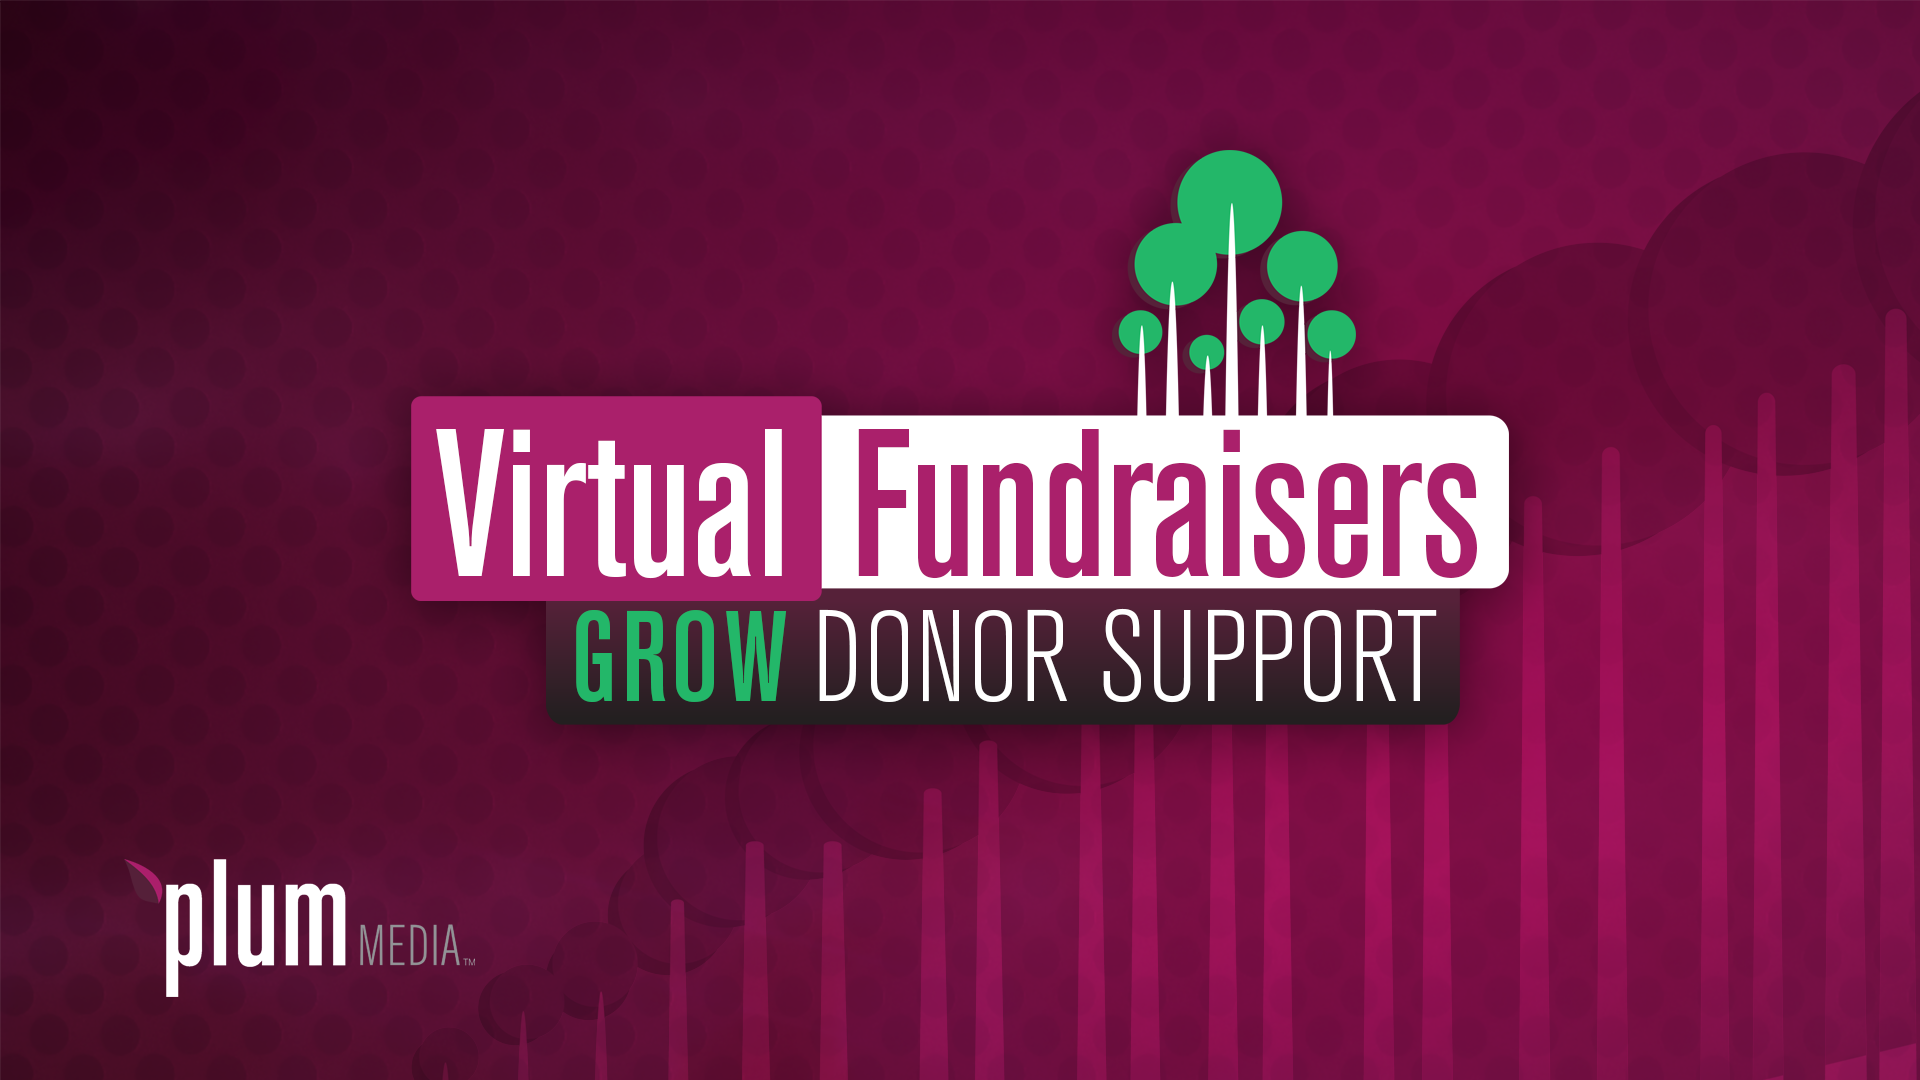 Virtual Fundraisers Grow Donor Support